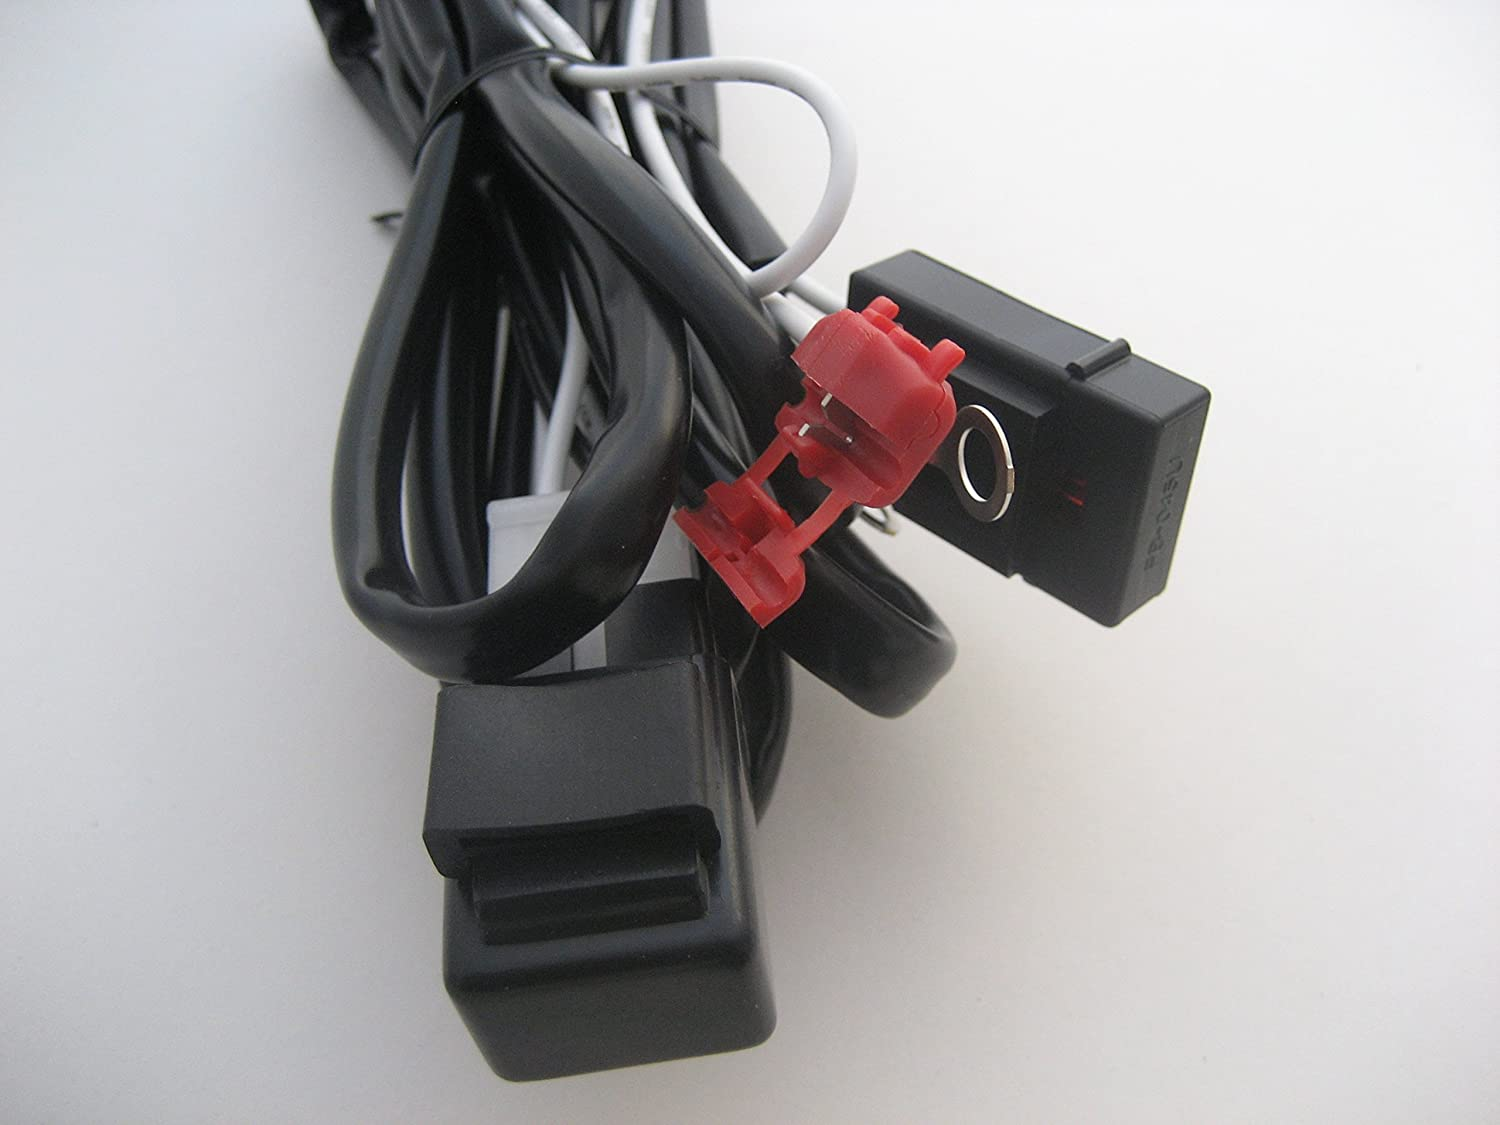 Complete Spot Light Fog Motorbike Motorcycle Wiring Loom Harness Manufacturers Uk Kit With On Off Switch Car